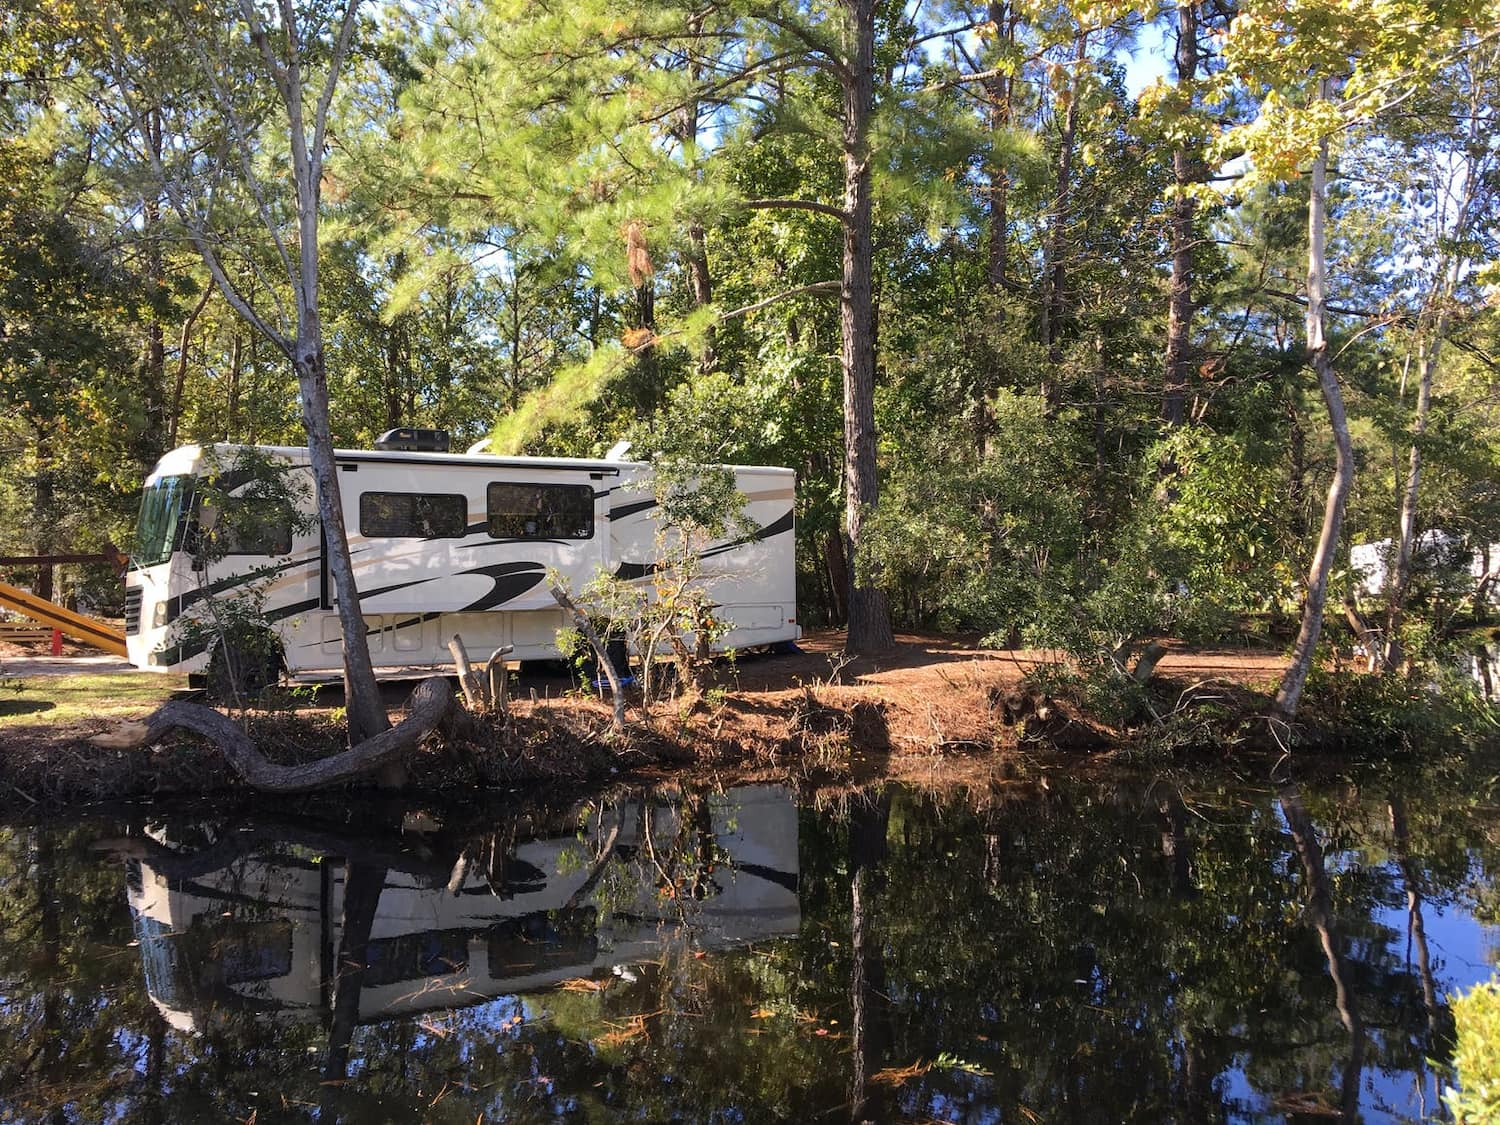 rv tucked into forested camp spot by the water